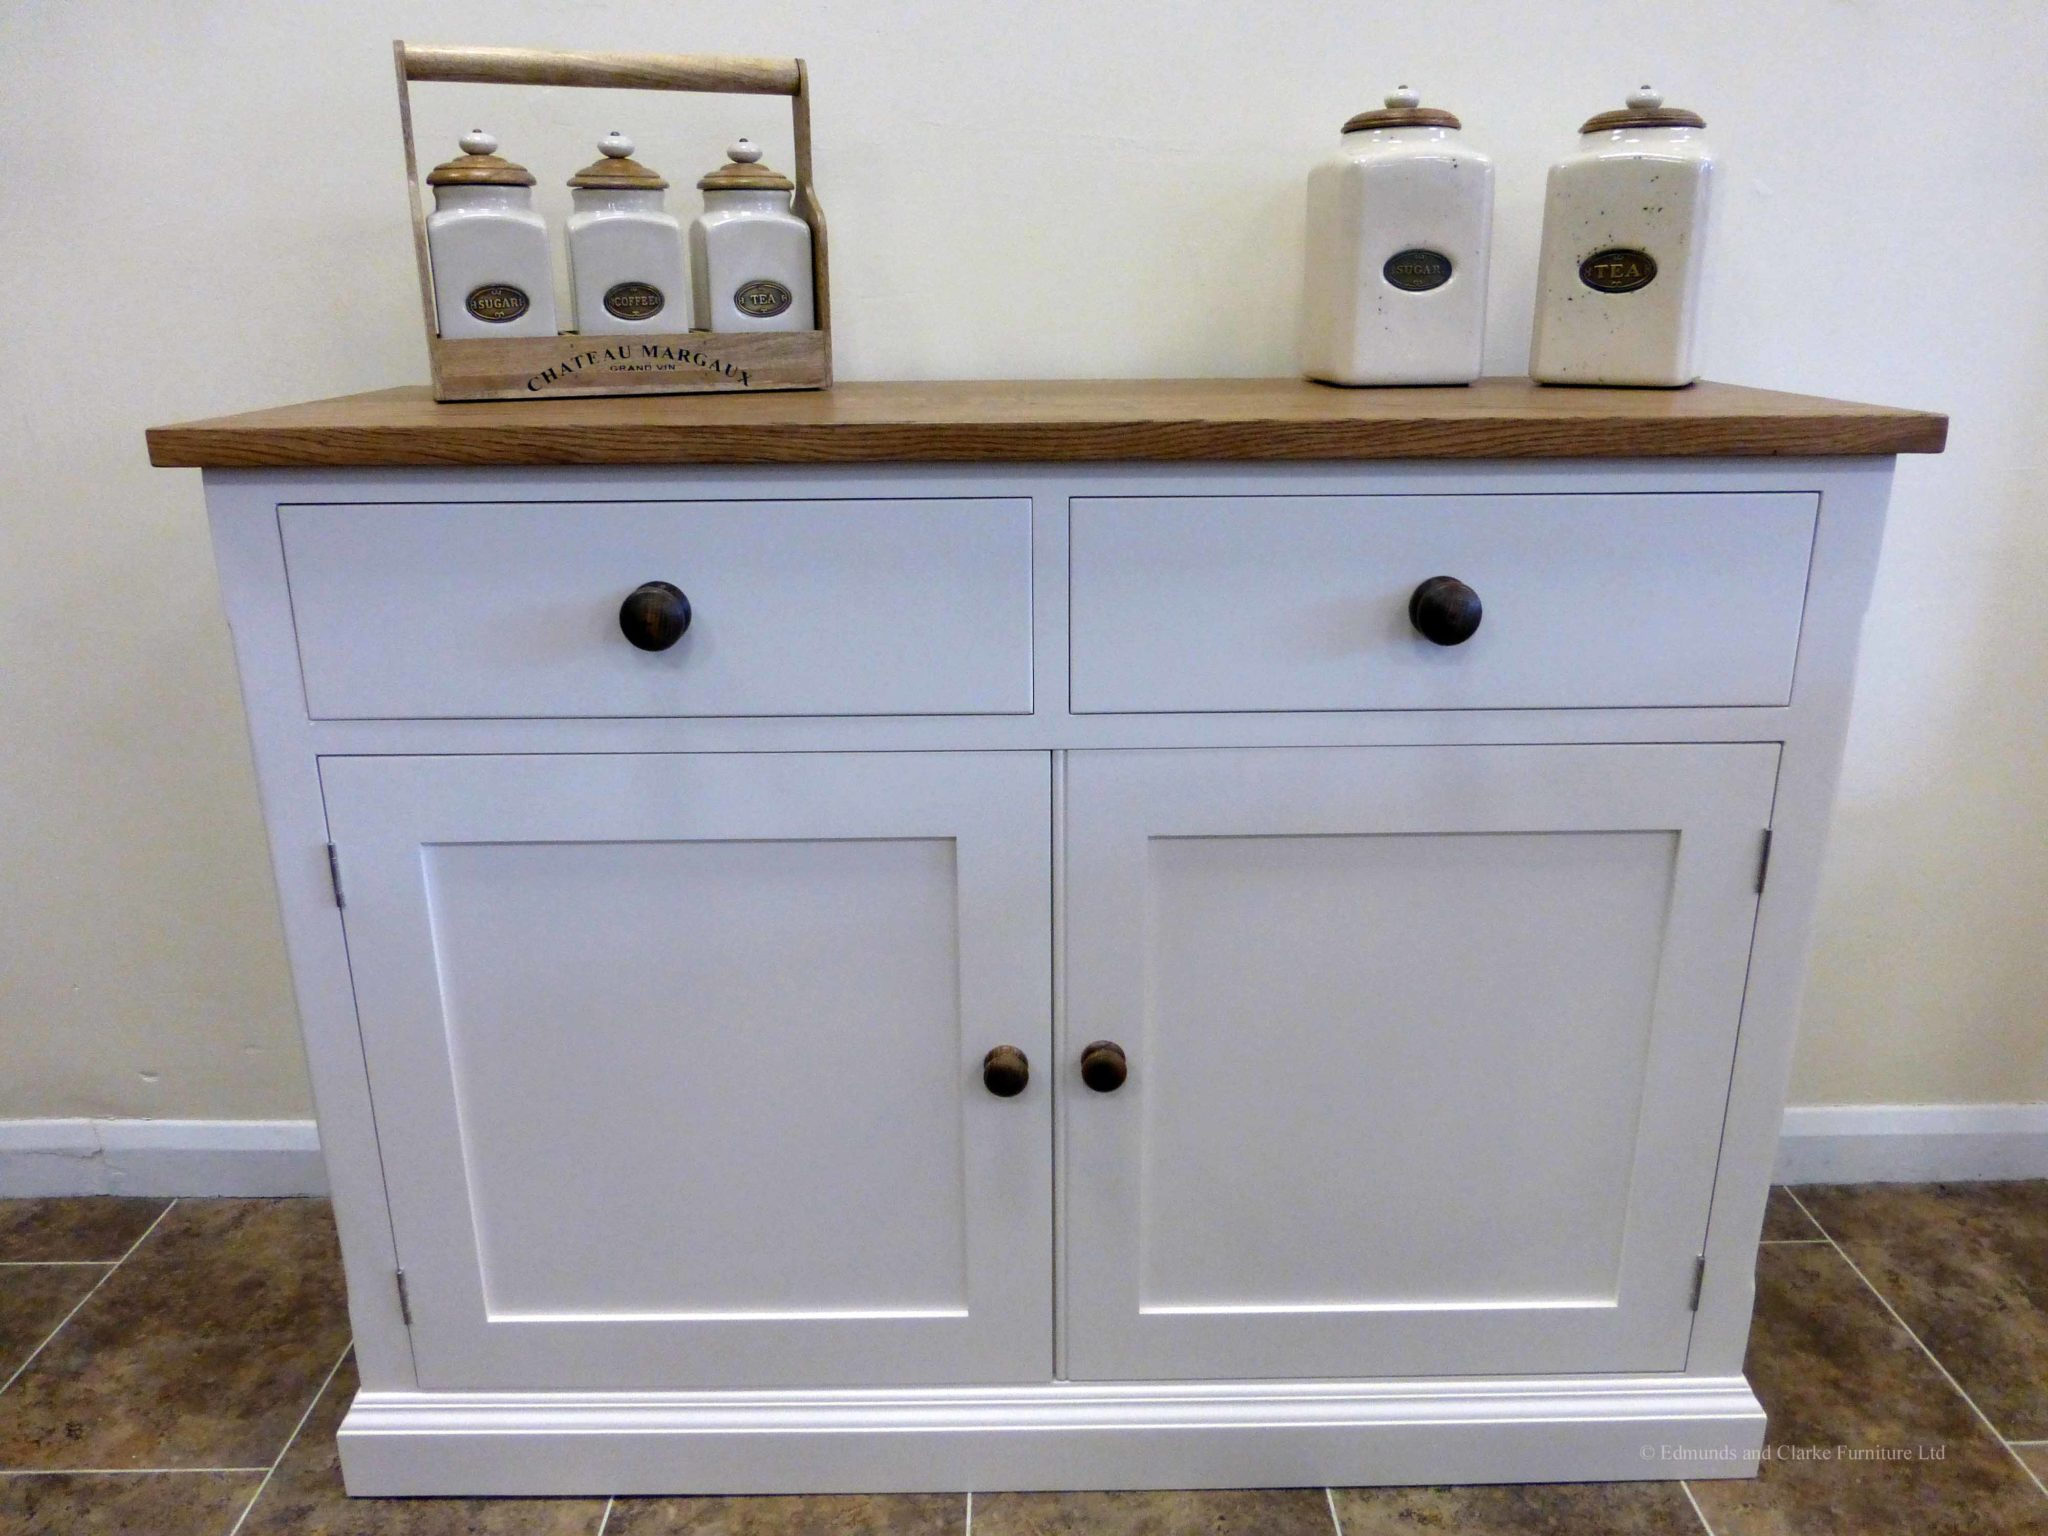 Edmunds Painted 4ft Sideboard. 25mm oak top. 2 drawers and 2 doors with adjustable shelves within. image showing dunwich stone oak handles and knobs. choice of handles. EDM040